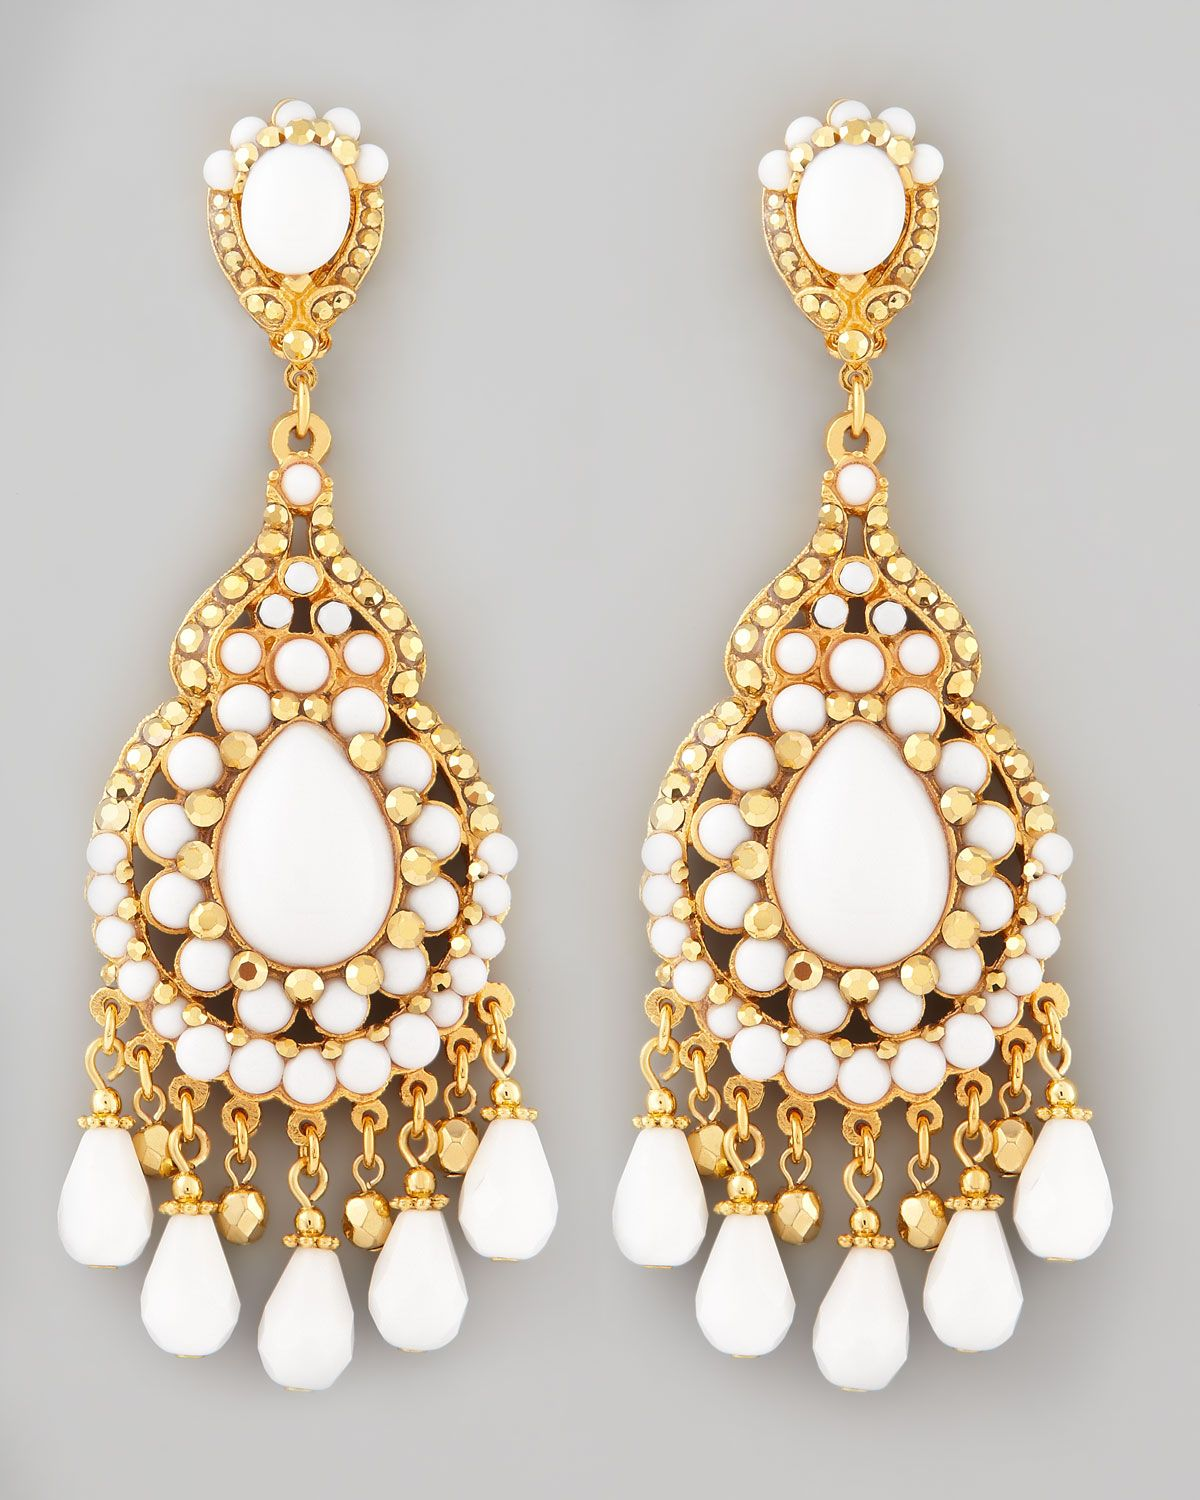 Httpharrislovejose maria barrera beaded chandelier clip httpharrislovejose maria barrera beaded chandelier clip earrings white p 4078ml aloadofball Images